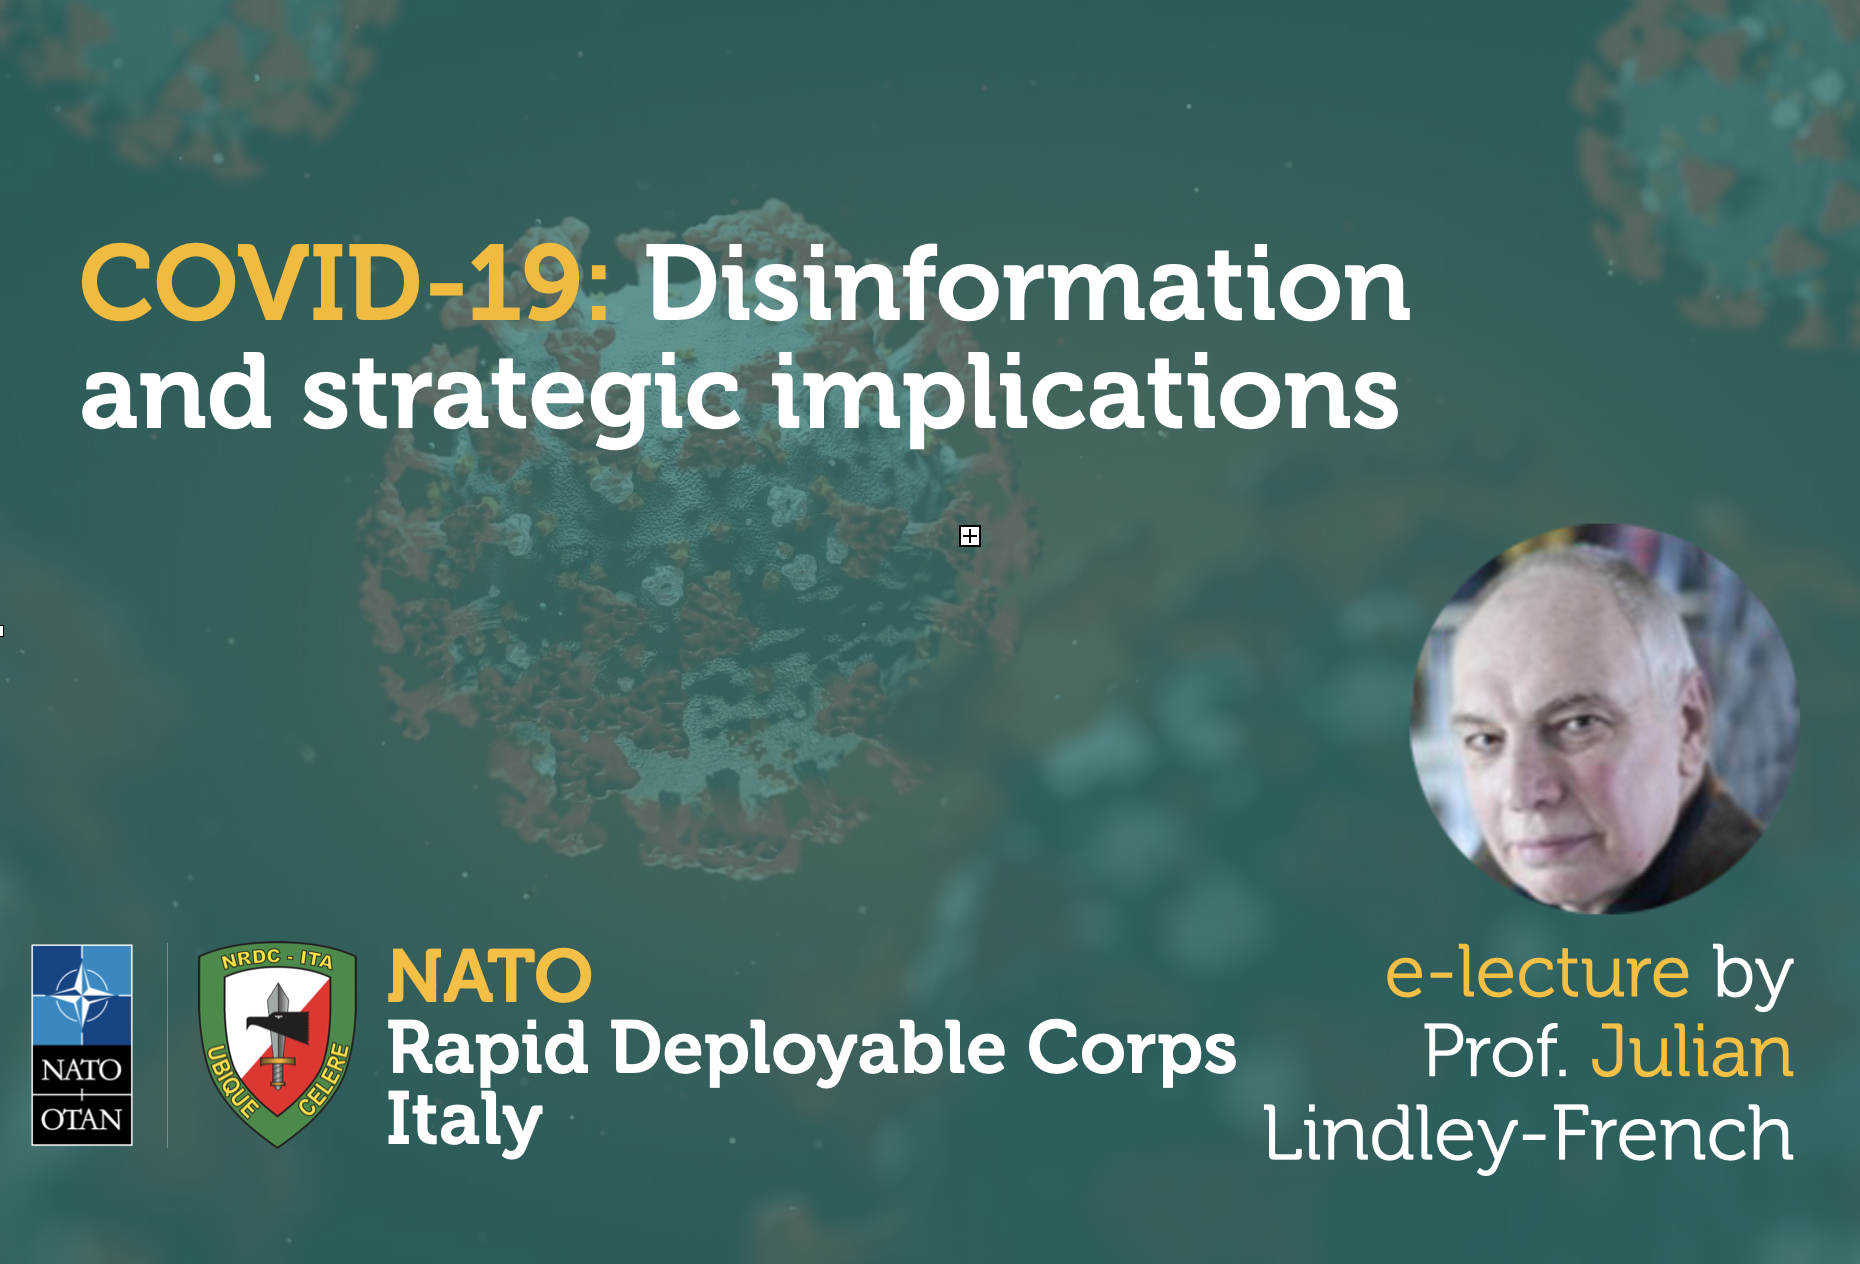 NRDC-ITA Staff considers Media Disinformation During the COVID-19 Crisis.